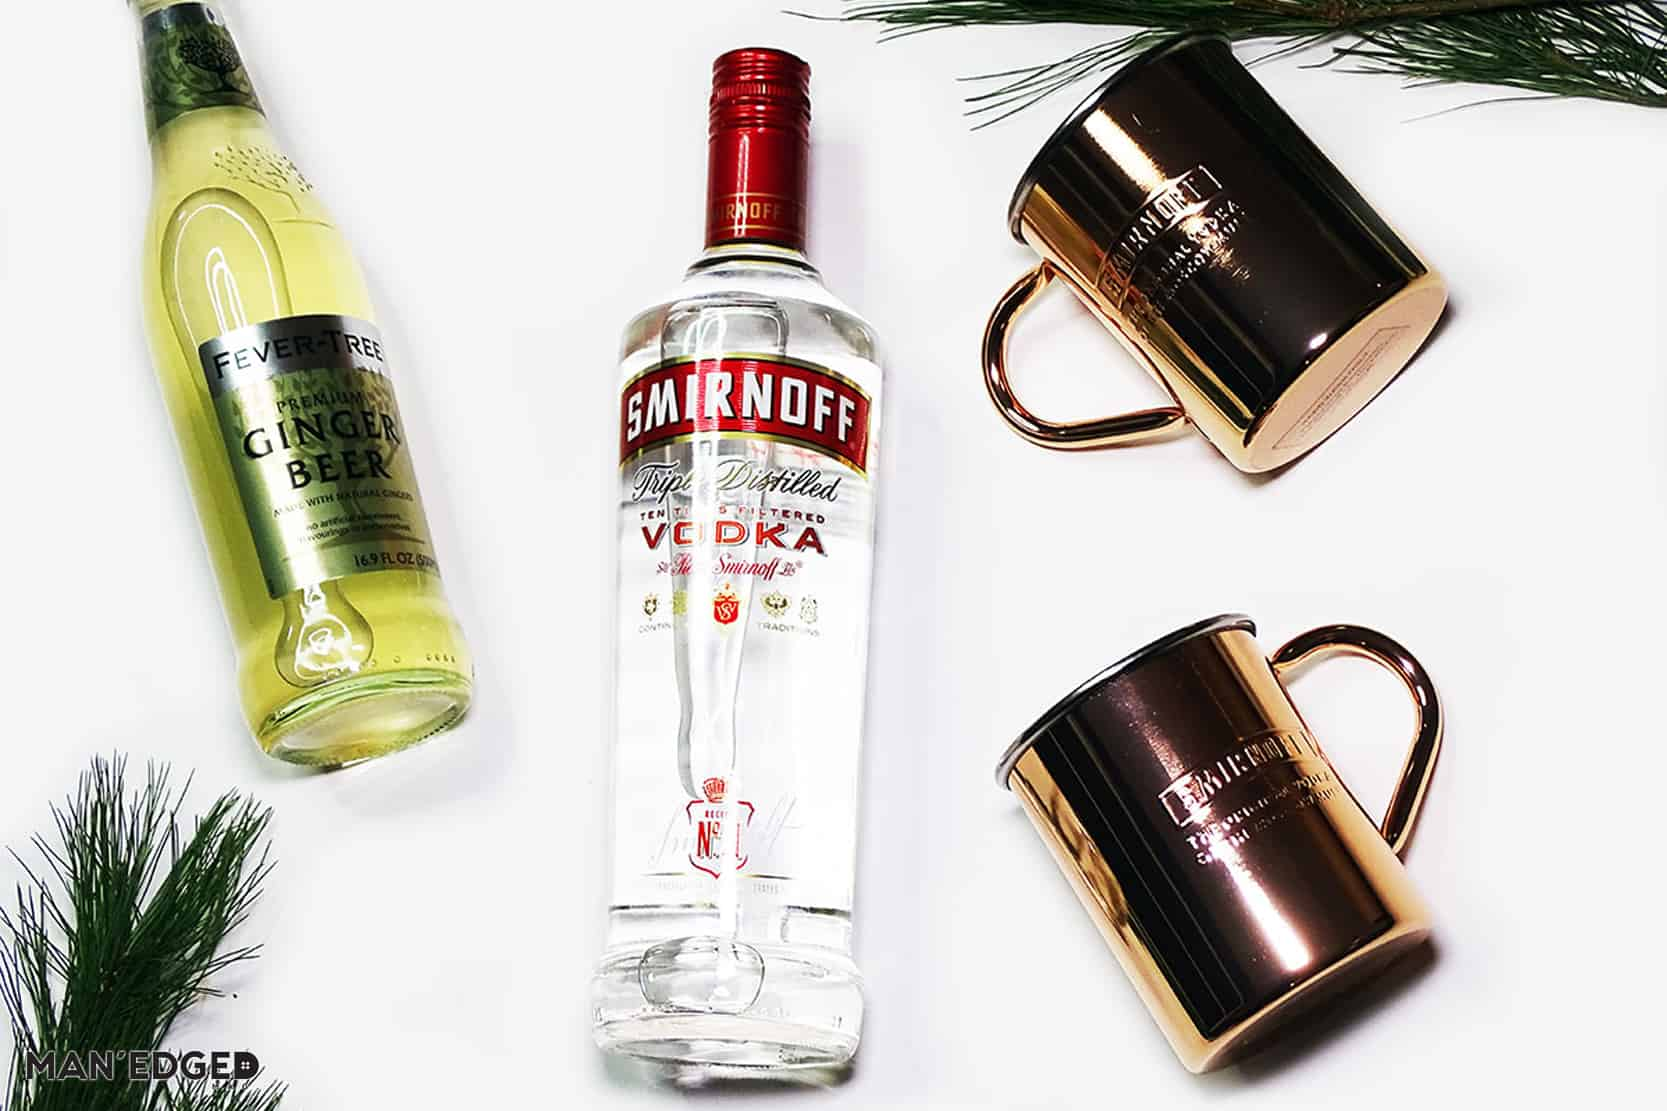 MAN'edged Magazine Holiday Gift Ideas for the Cocktail Guy featuring Moscow Mule Kit with Smirnoff